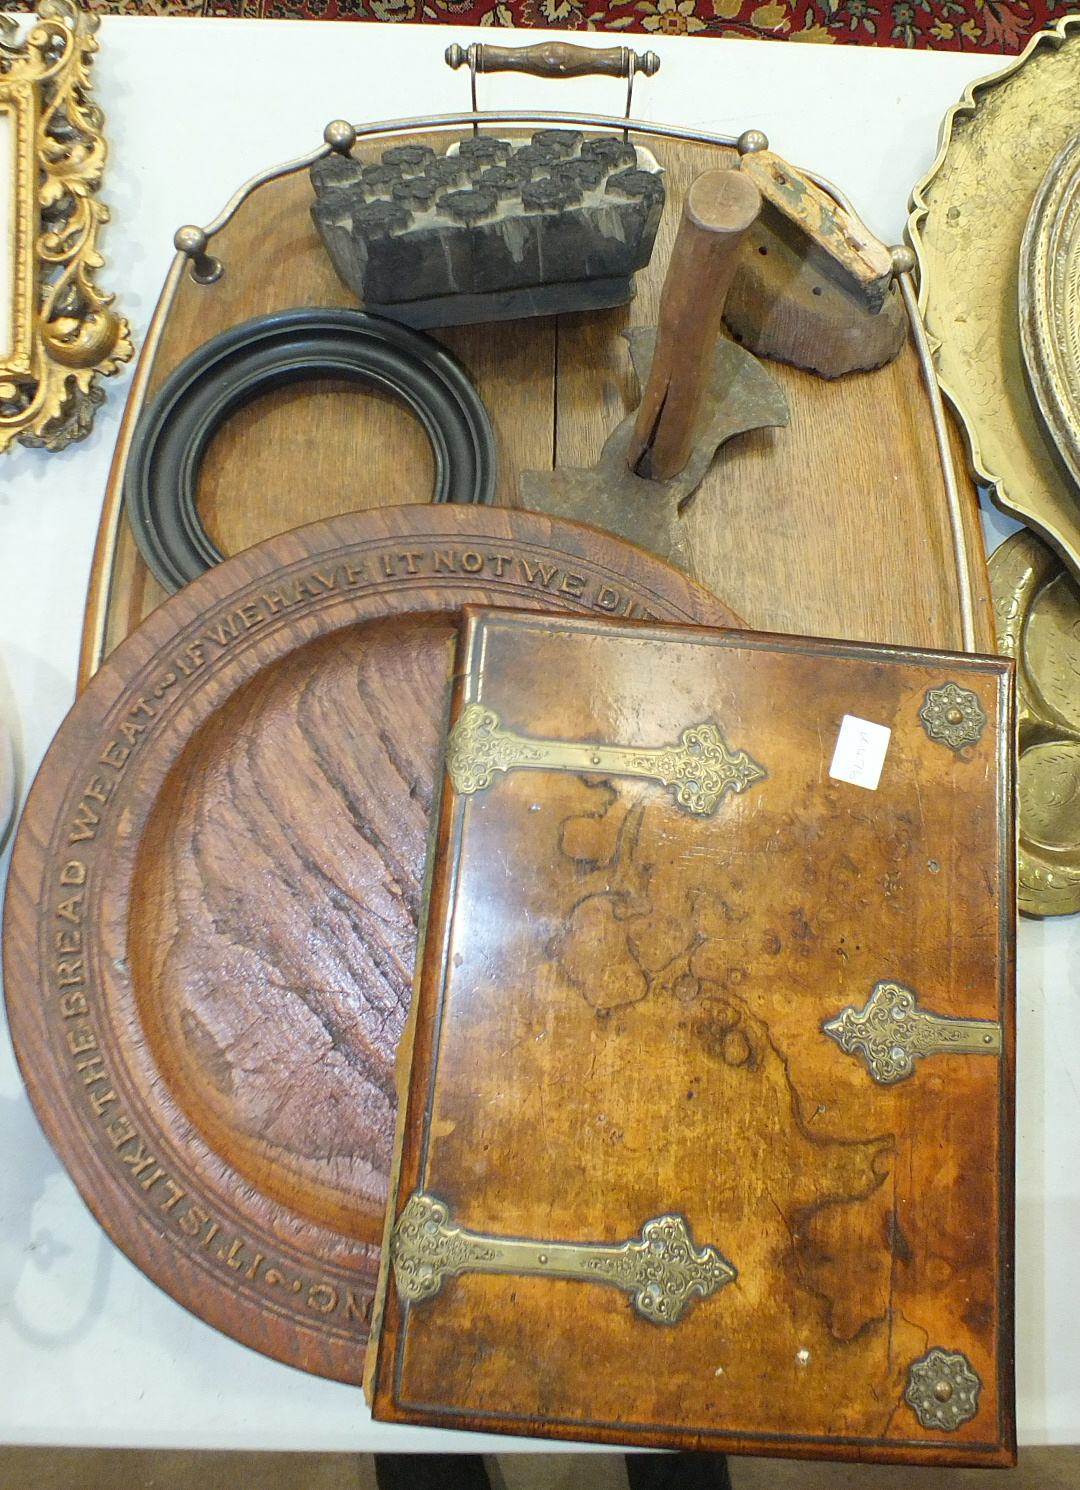 Lot 112 - A Victorian walnut and metal-bound book or blotter cover, 31 x 23cm, a carved bread dish with border